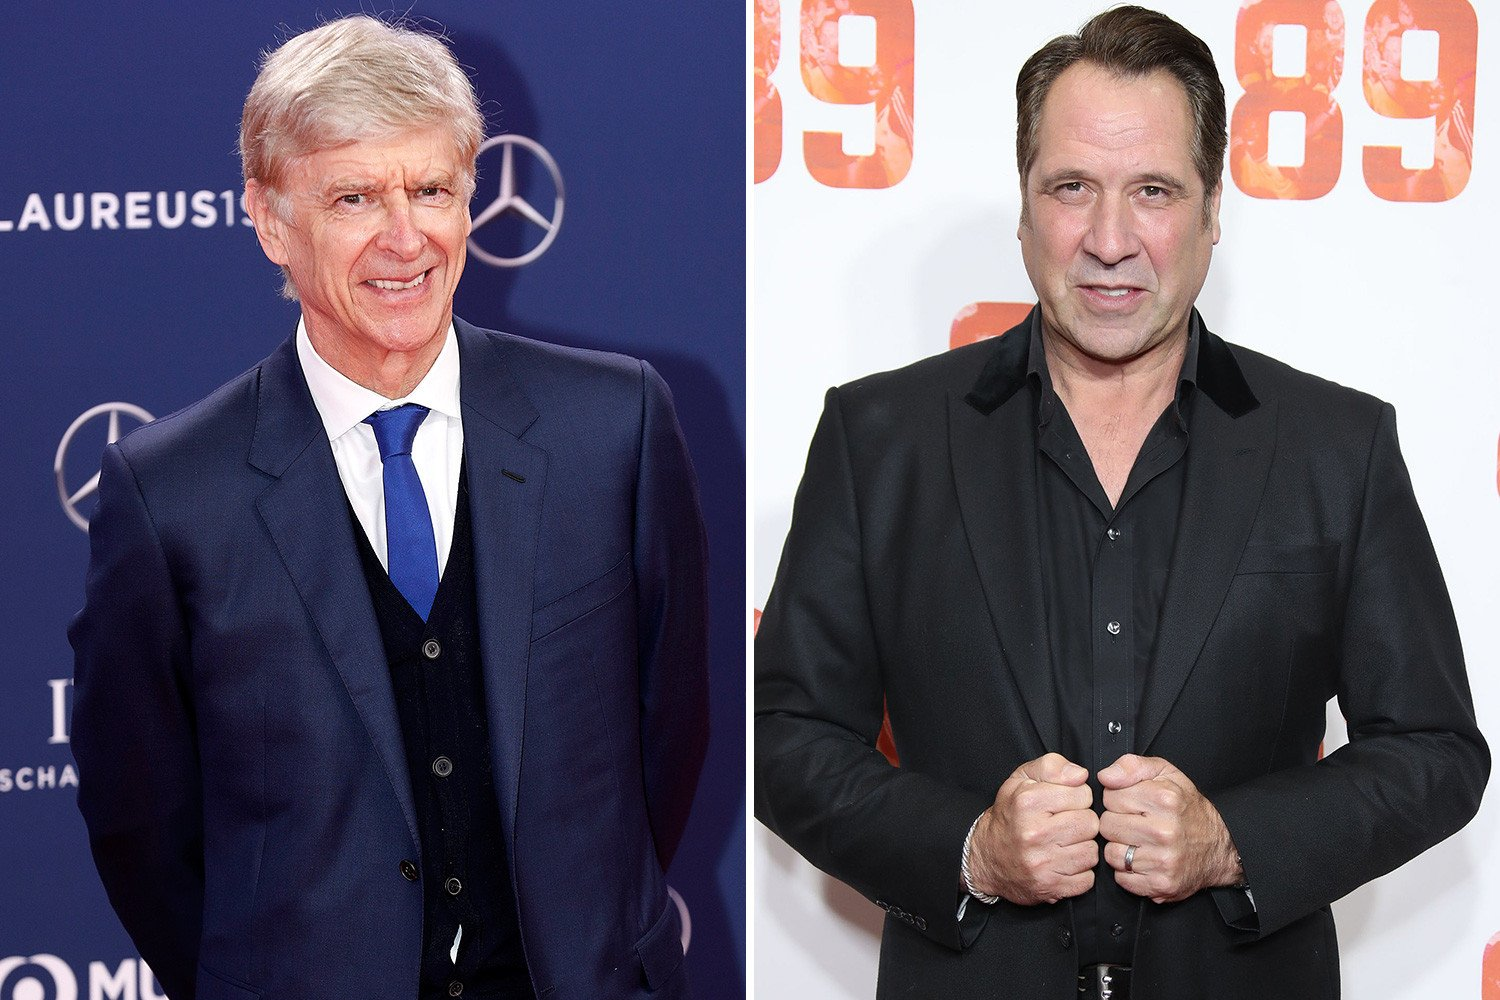 Arsene Wenger would be 'perfect fit' to replace Sarri at Chelsea, says Arsenal legend David Seaman